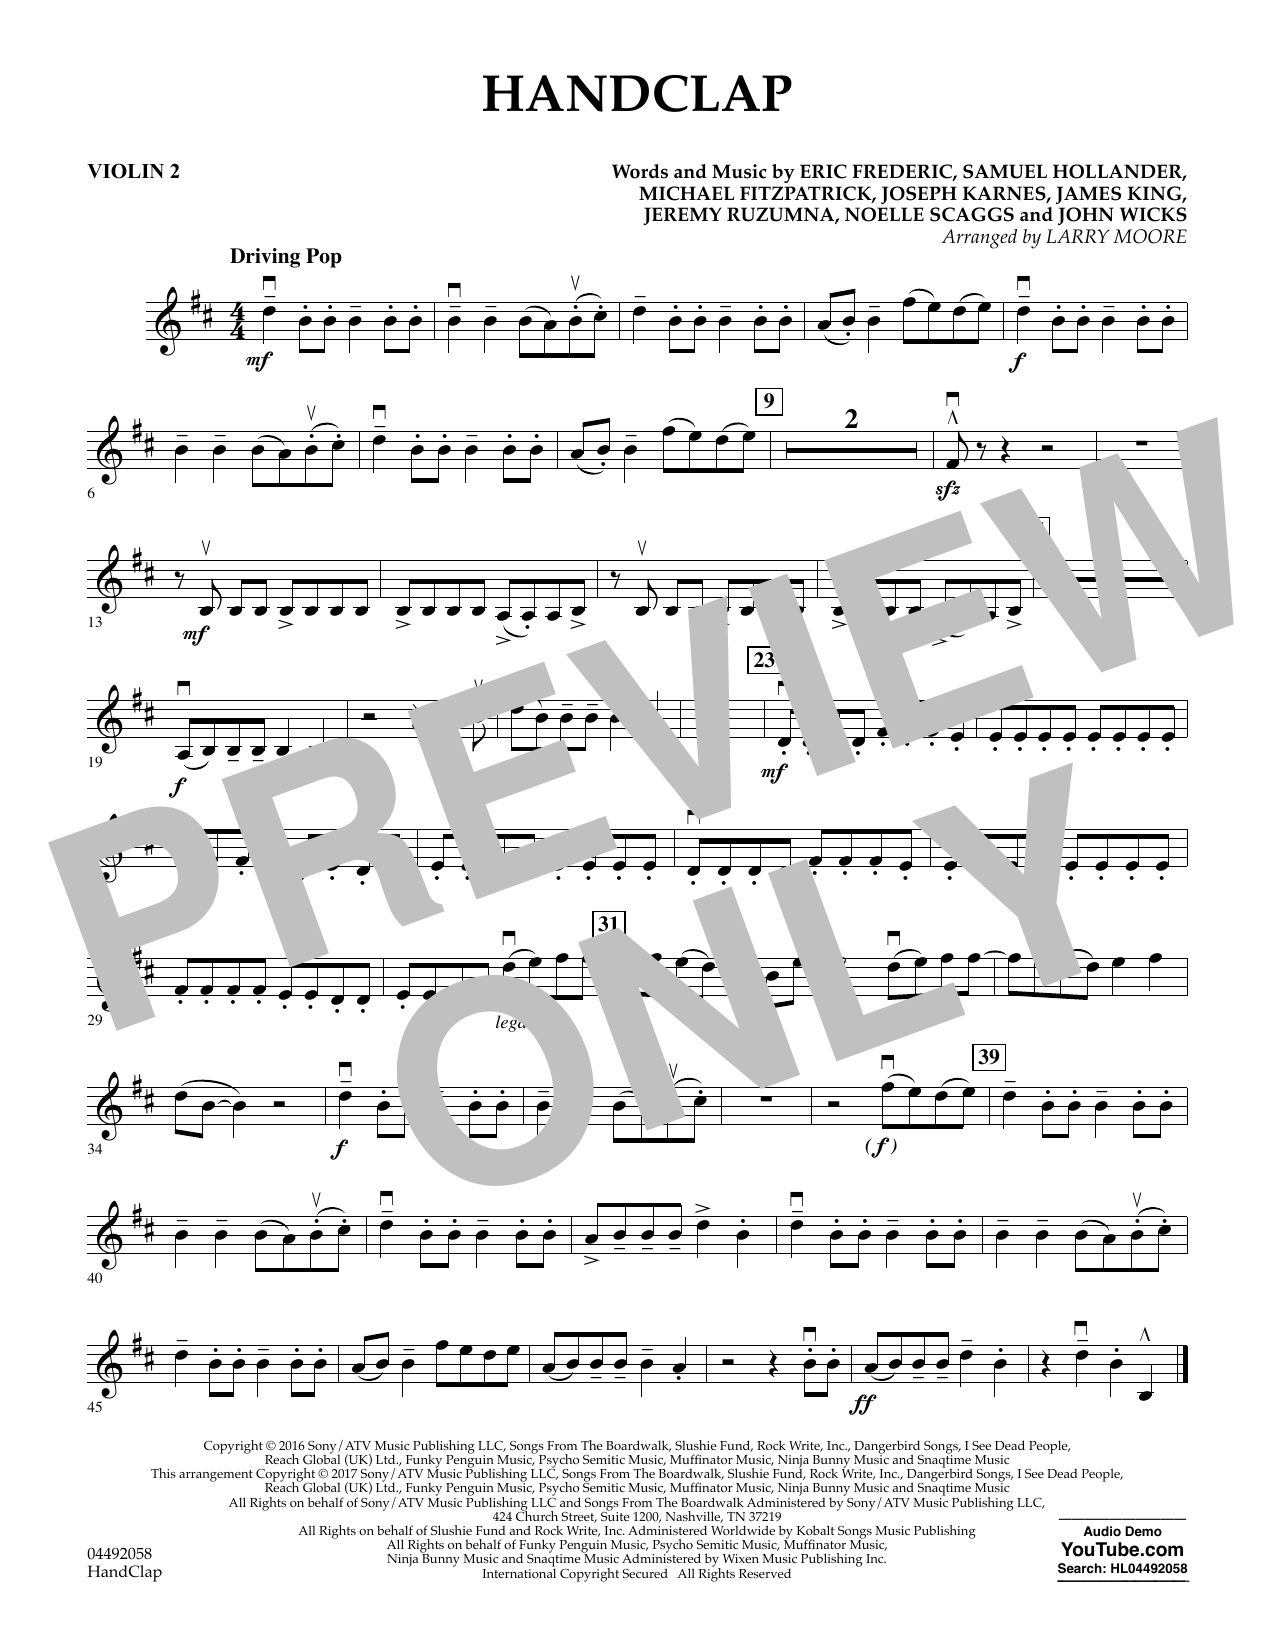 Larry Moore HandClap - Violin 2 sheet music notes and chords. Download Printable PDF.